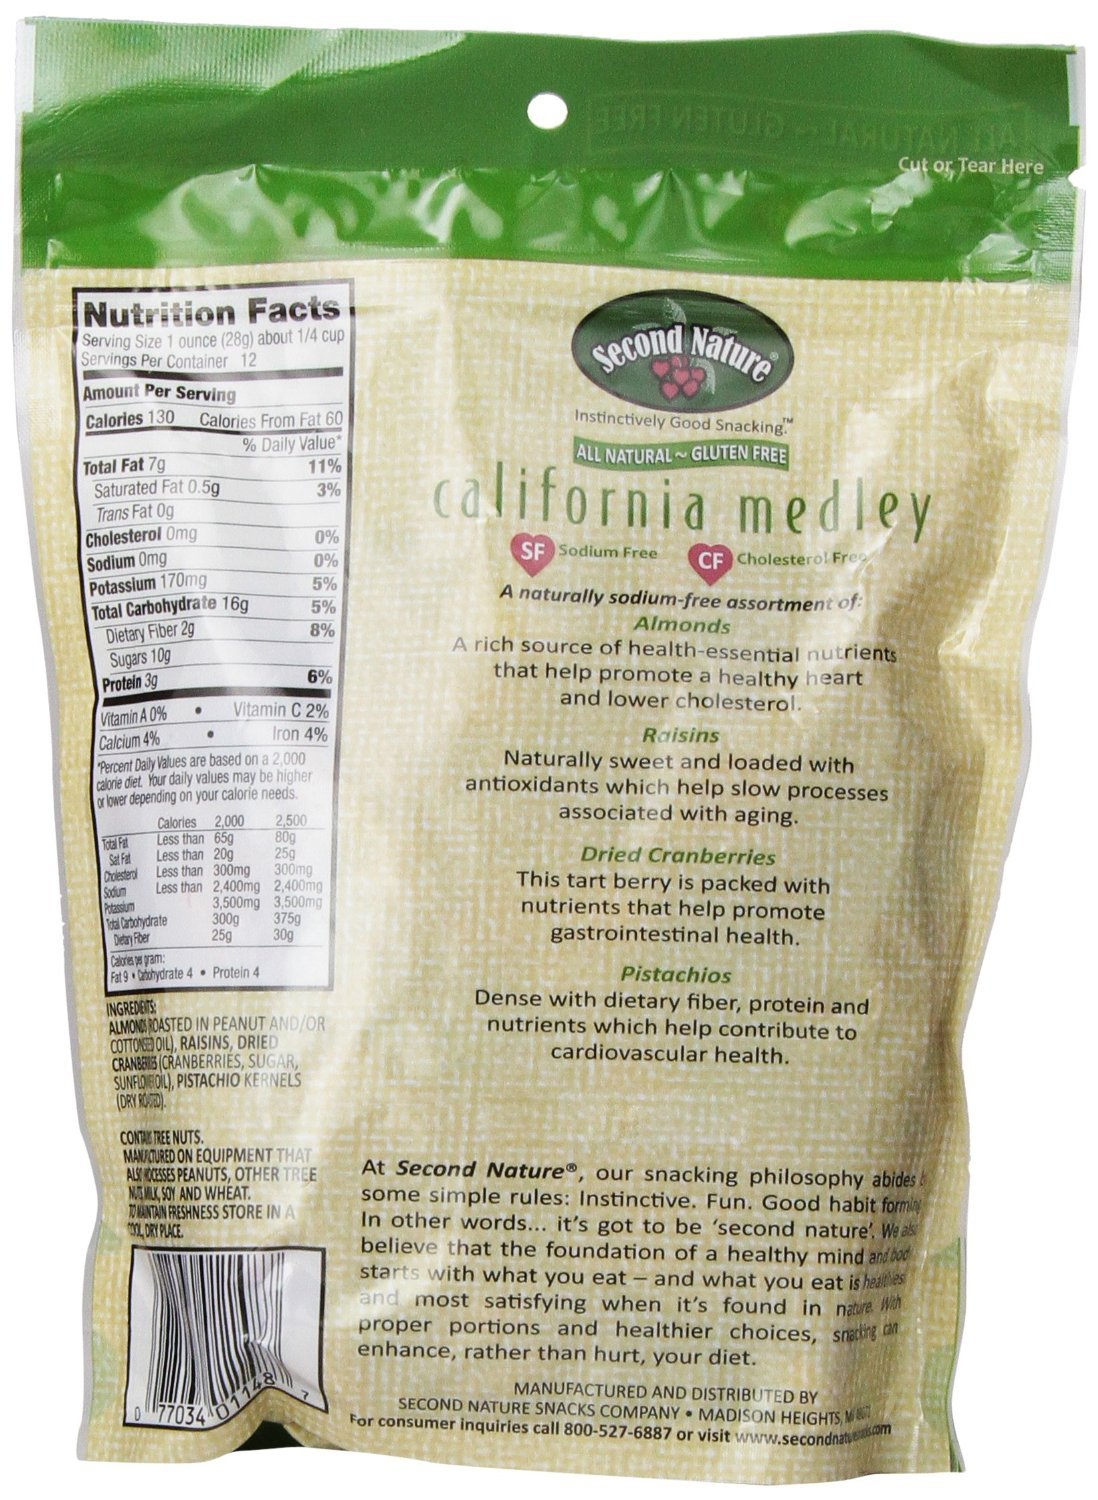 Second Nature California Medley All Natural Trail Mix, 26oz. Roasted Almonds, Pistachios, Raisins, and Dried Cranberries. Sodium-Free. Resealable Bag for Freshness. by Second Nature (Image #2)